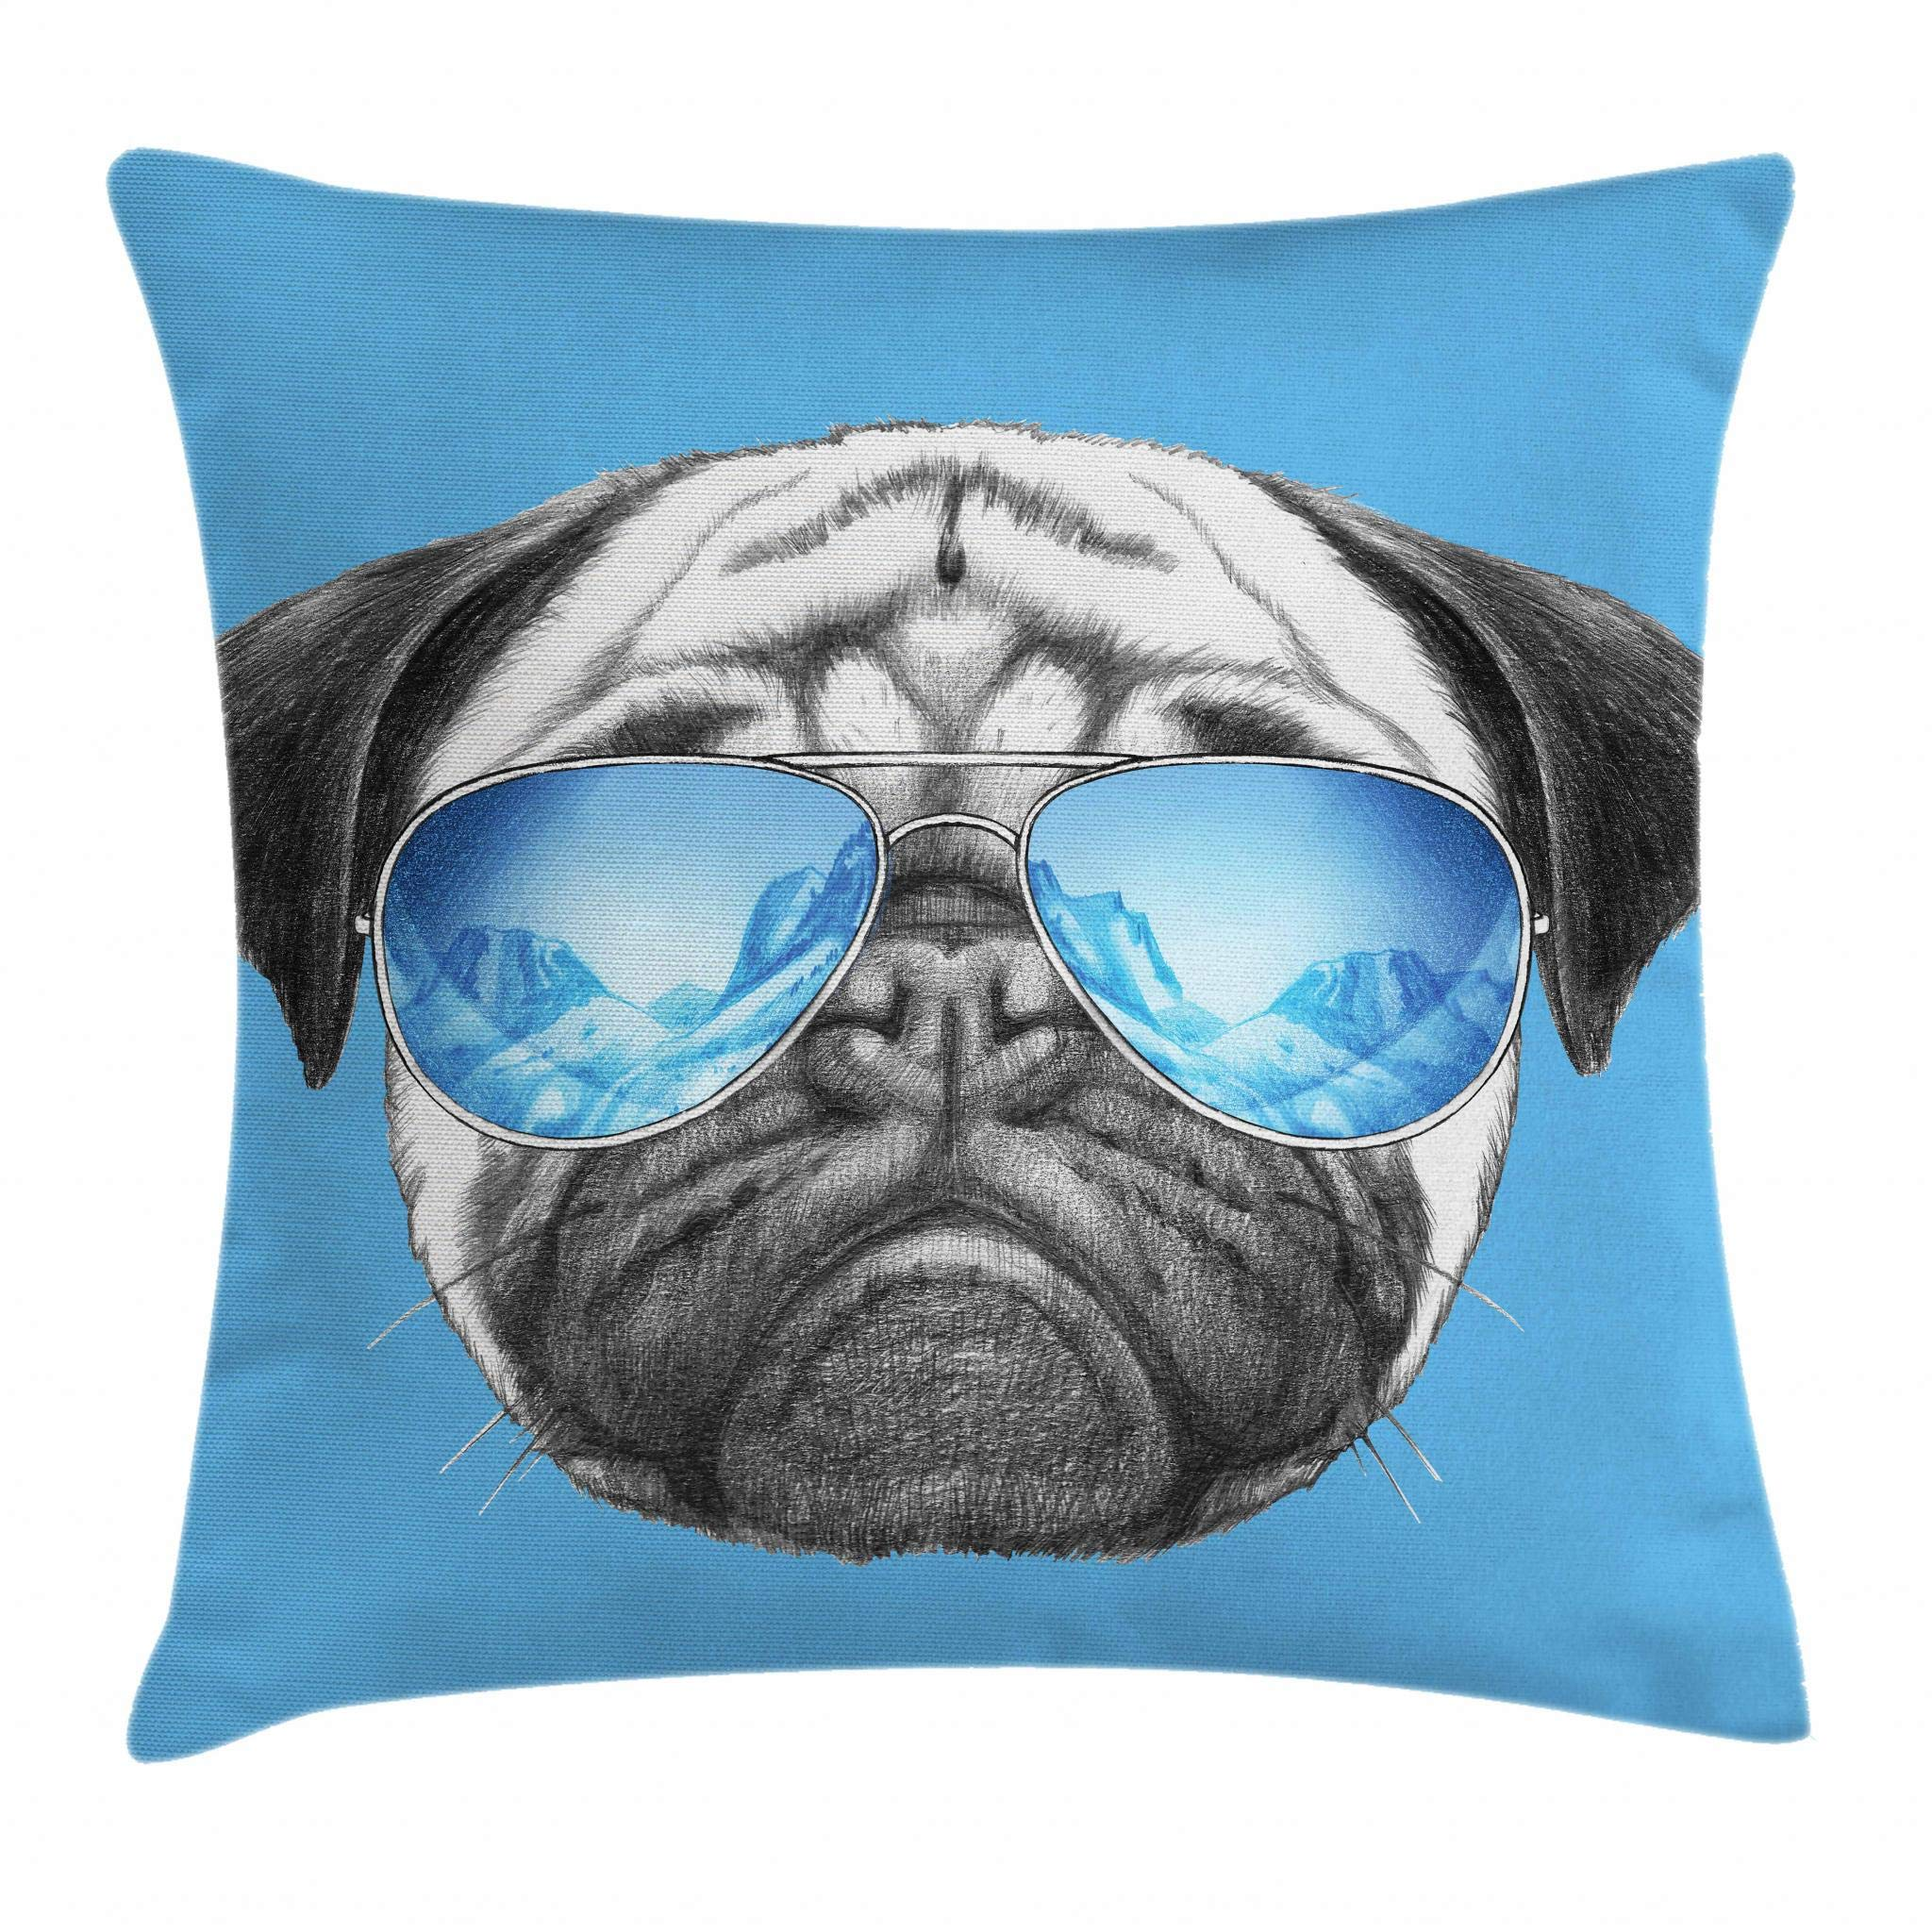 Ambesonne Pug Throw Pillow Cushion Cover, Pug Portrait with Mirror Sunglasses Hand Drawn Illustration of Pet Animal Funny, Decorative Square Accent Pillow Case, 16 X 16 Inches, Pearl Blue Black